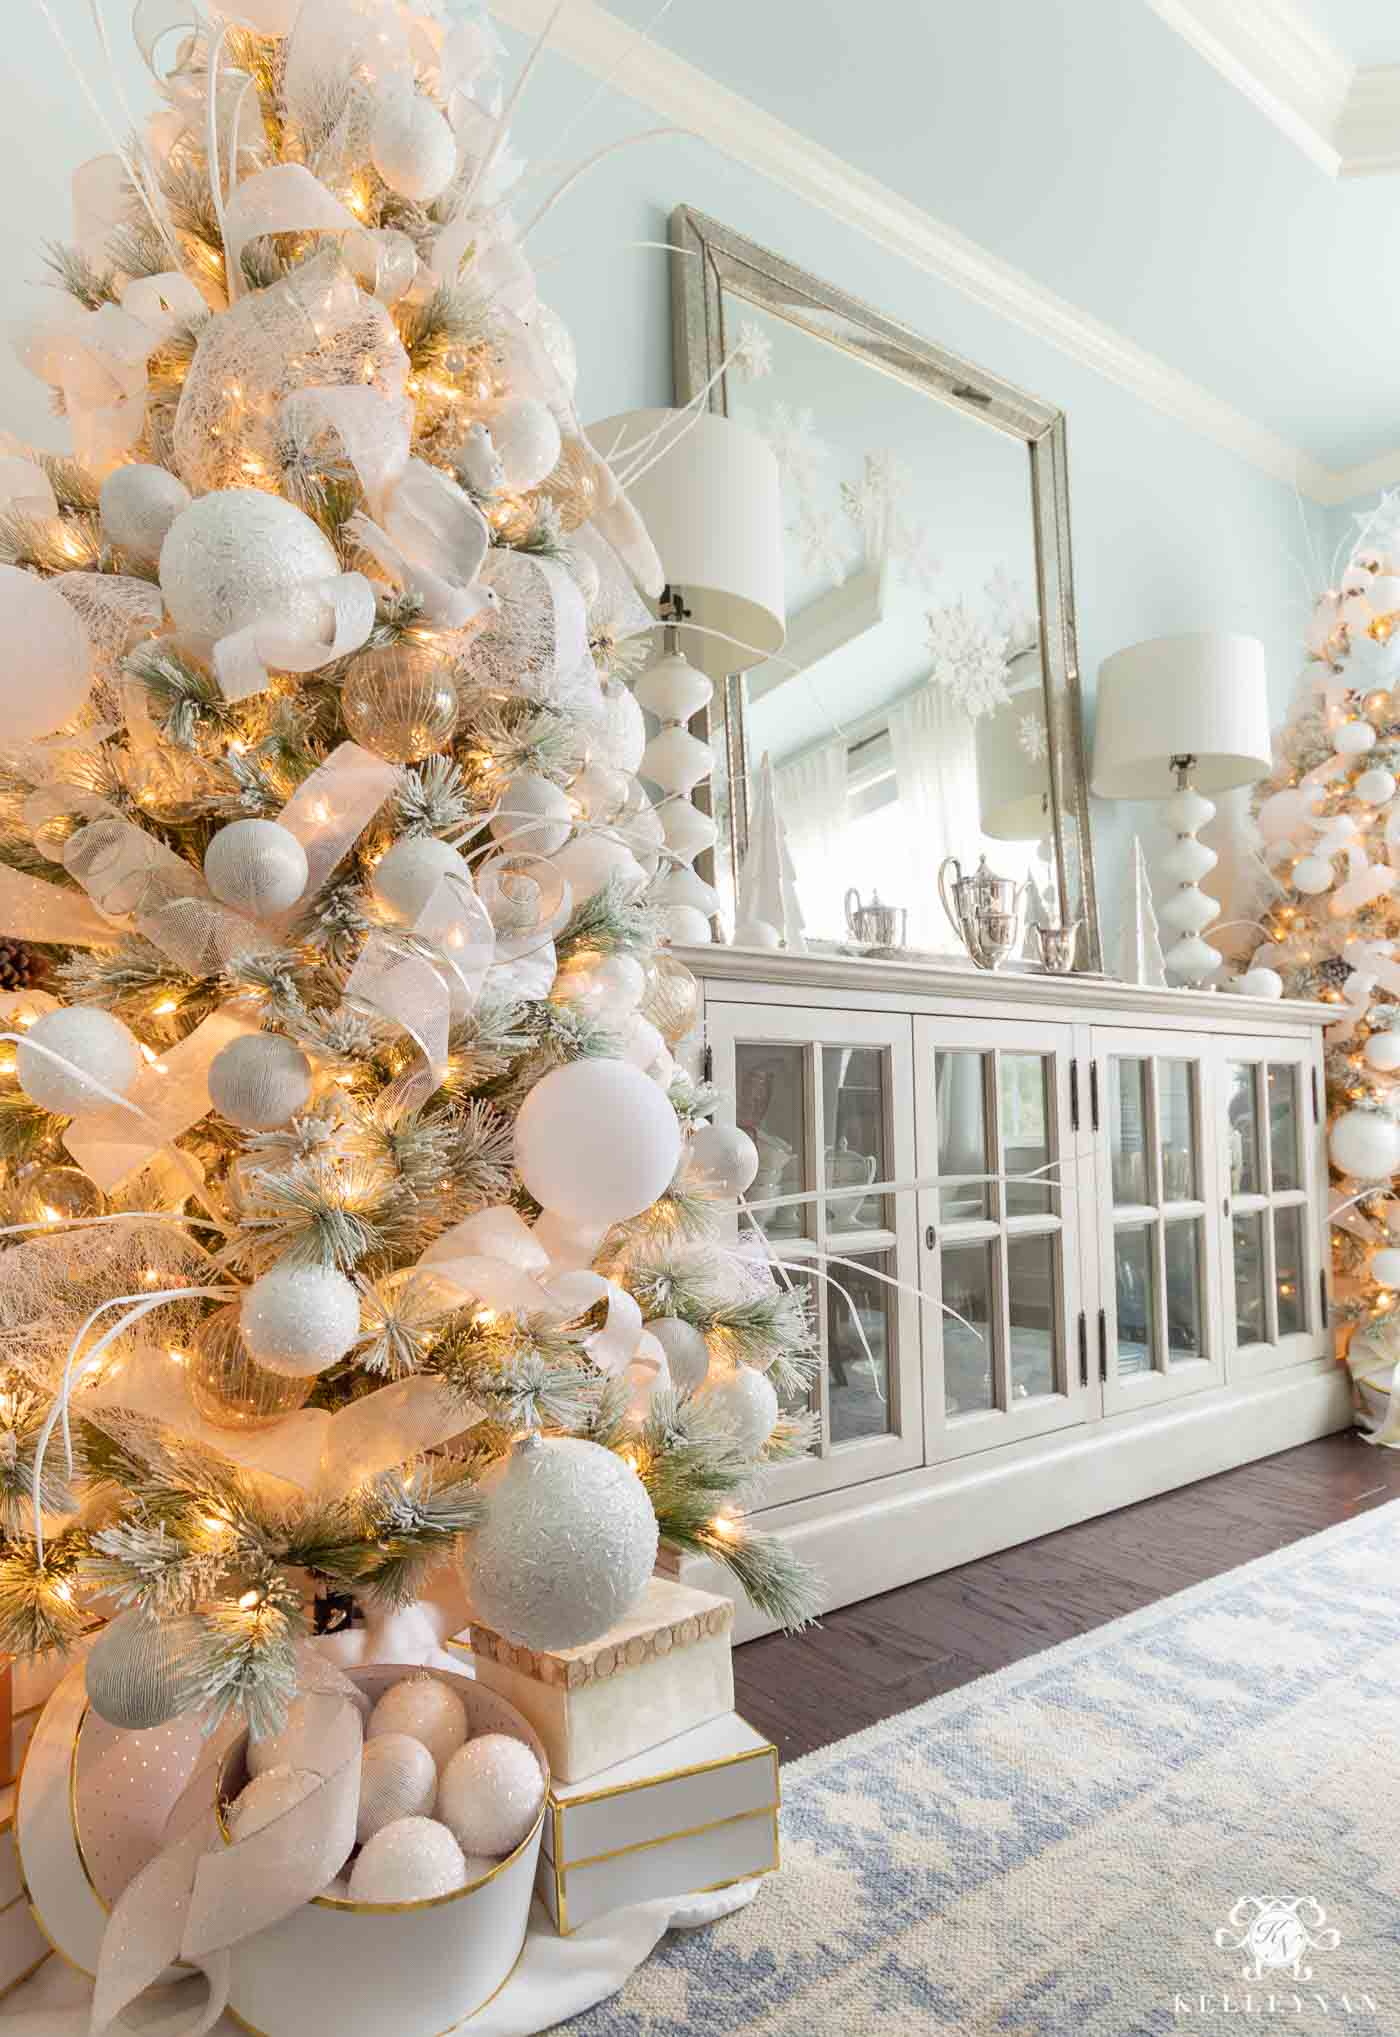 Matching Flocked Christmas Trees! Snowy, Elegant Christmas Decor